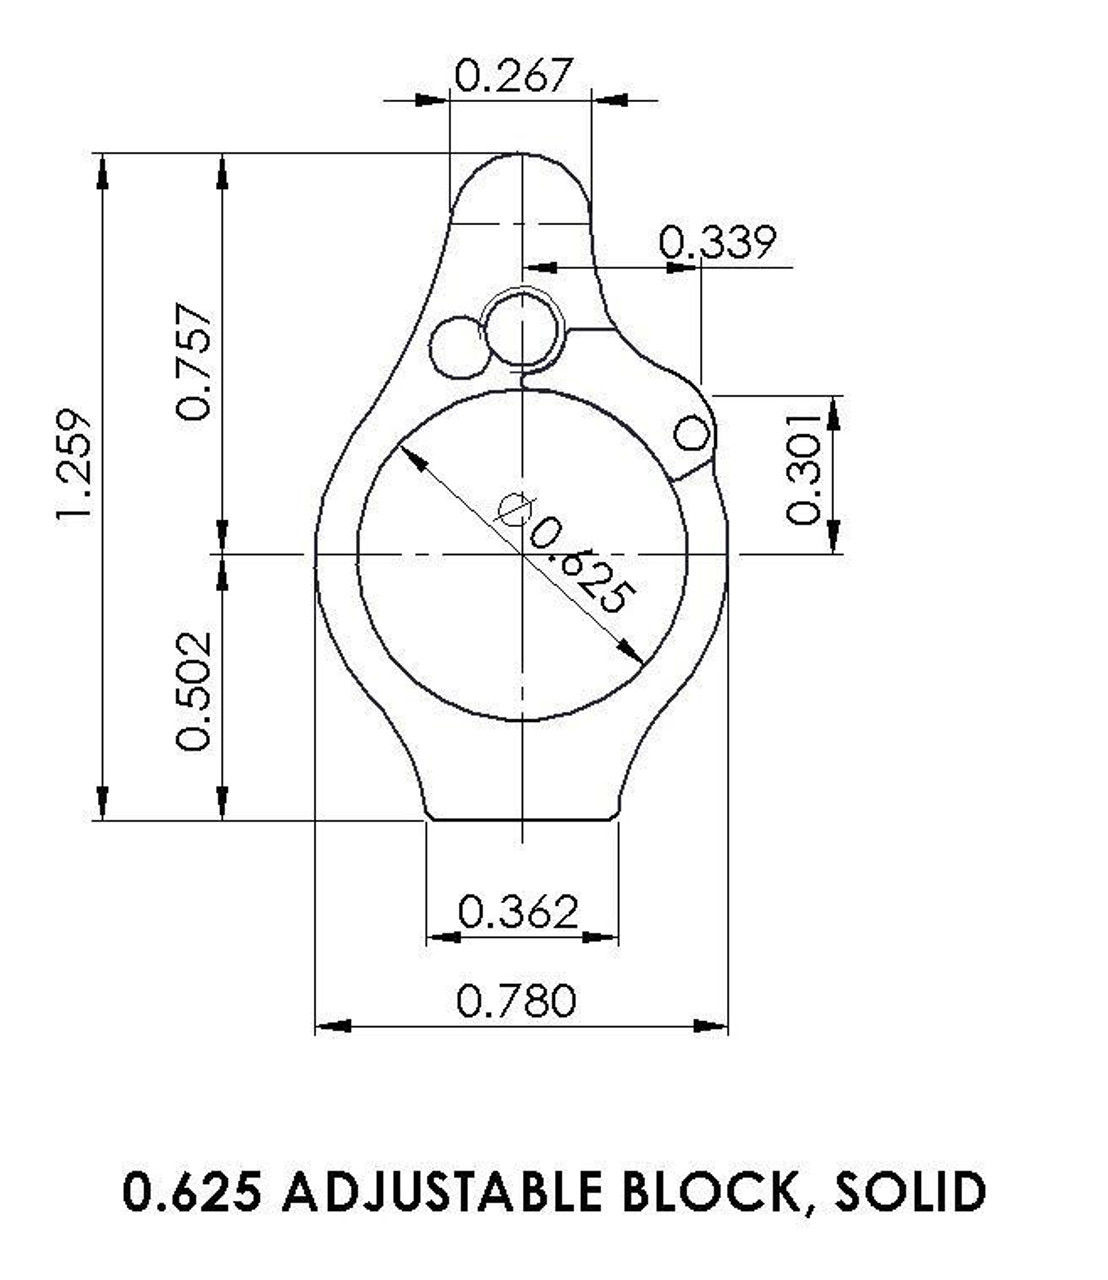 Superlative Arms Adjustable Gas Block Bleed Off - Solid, Melonited